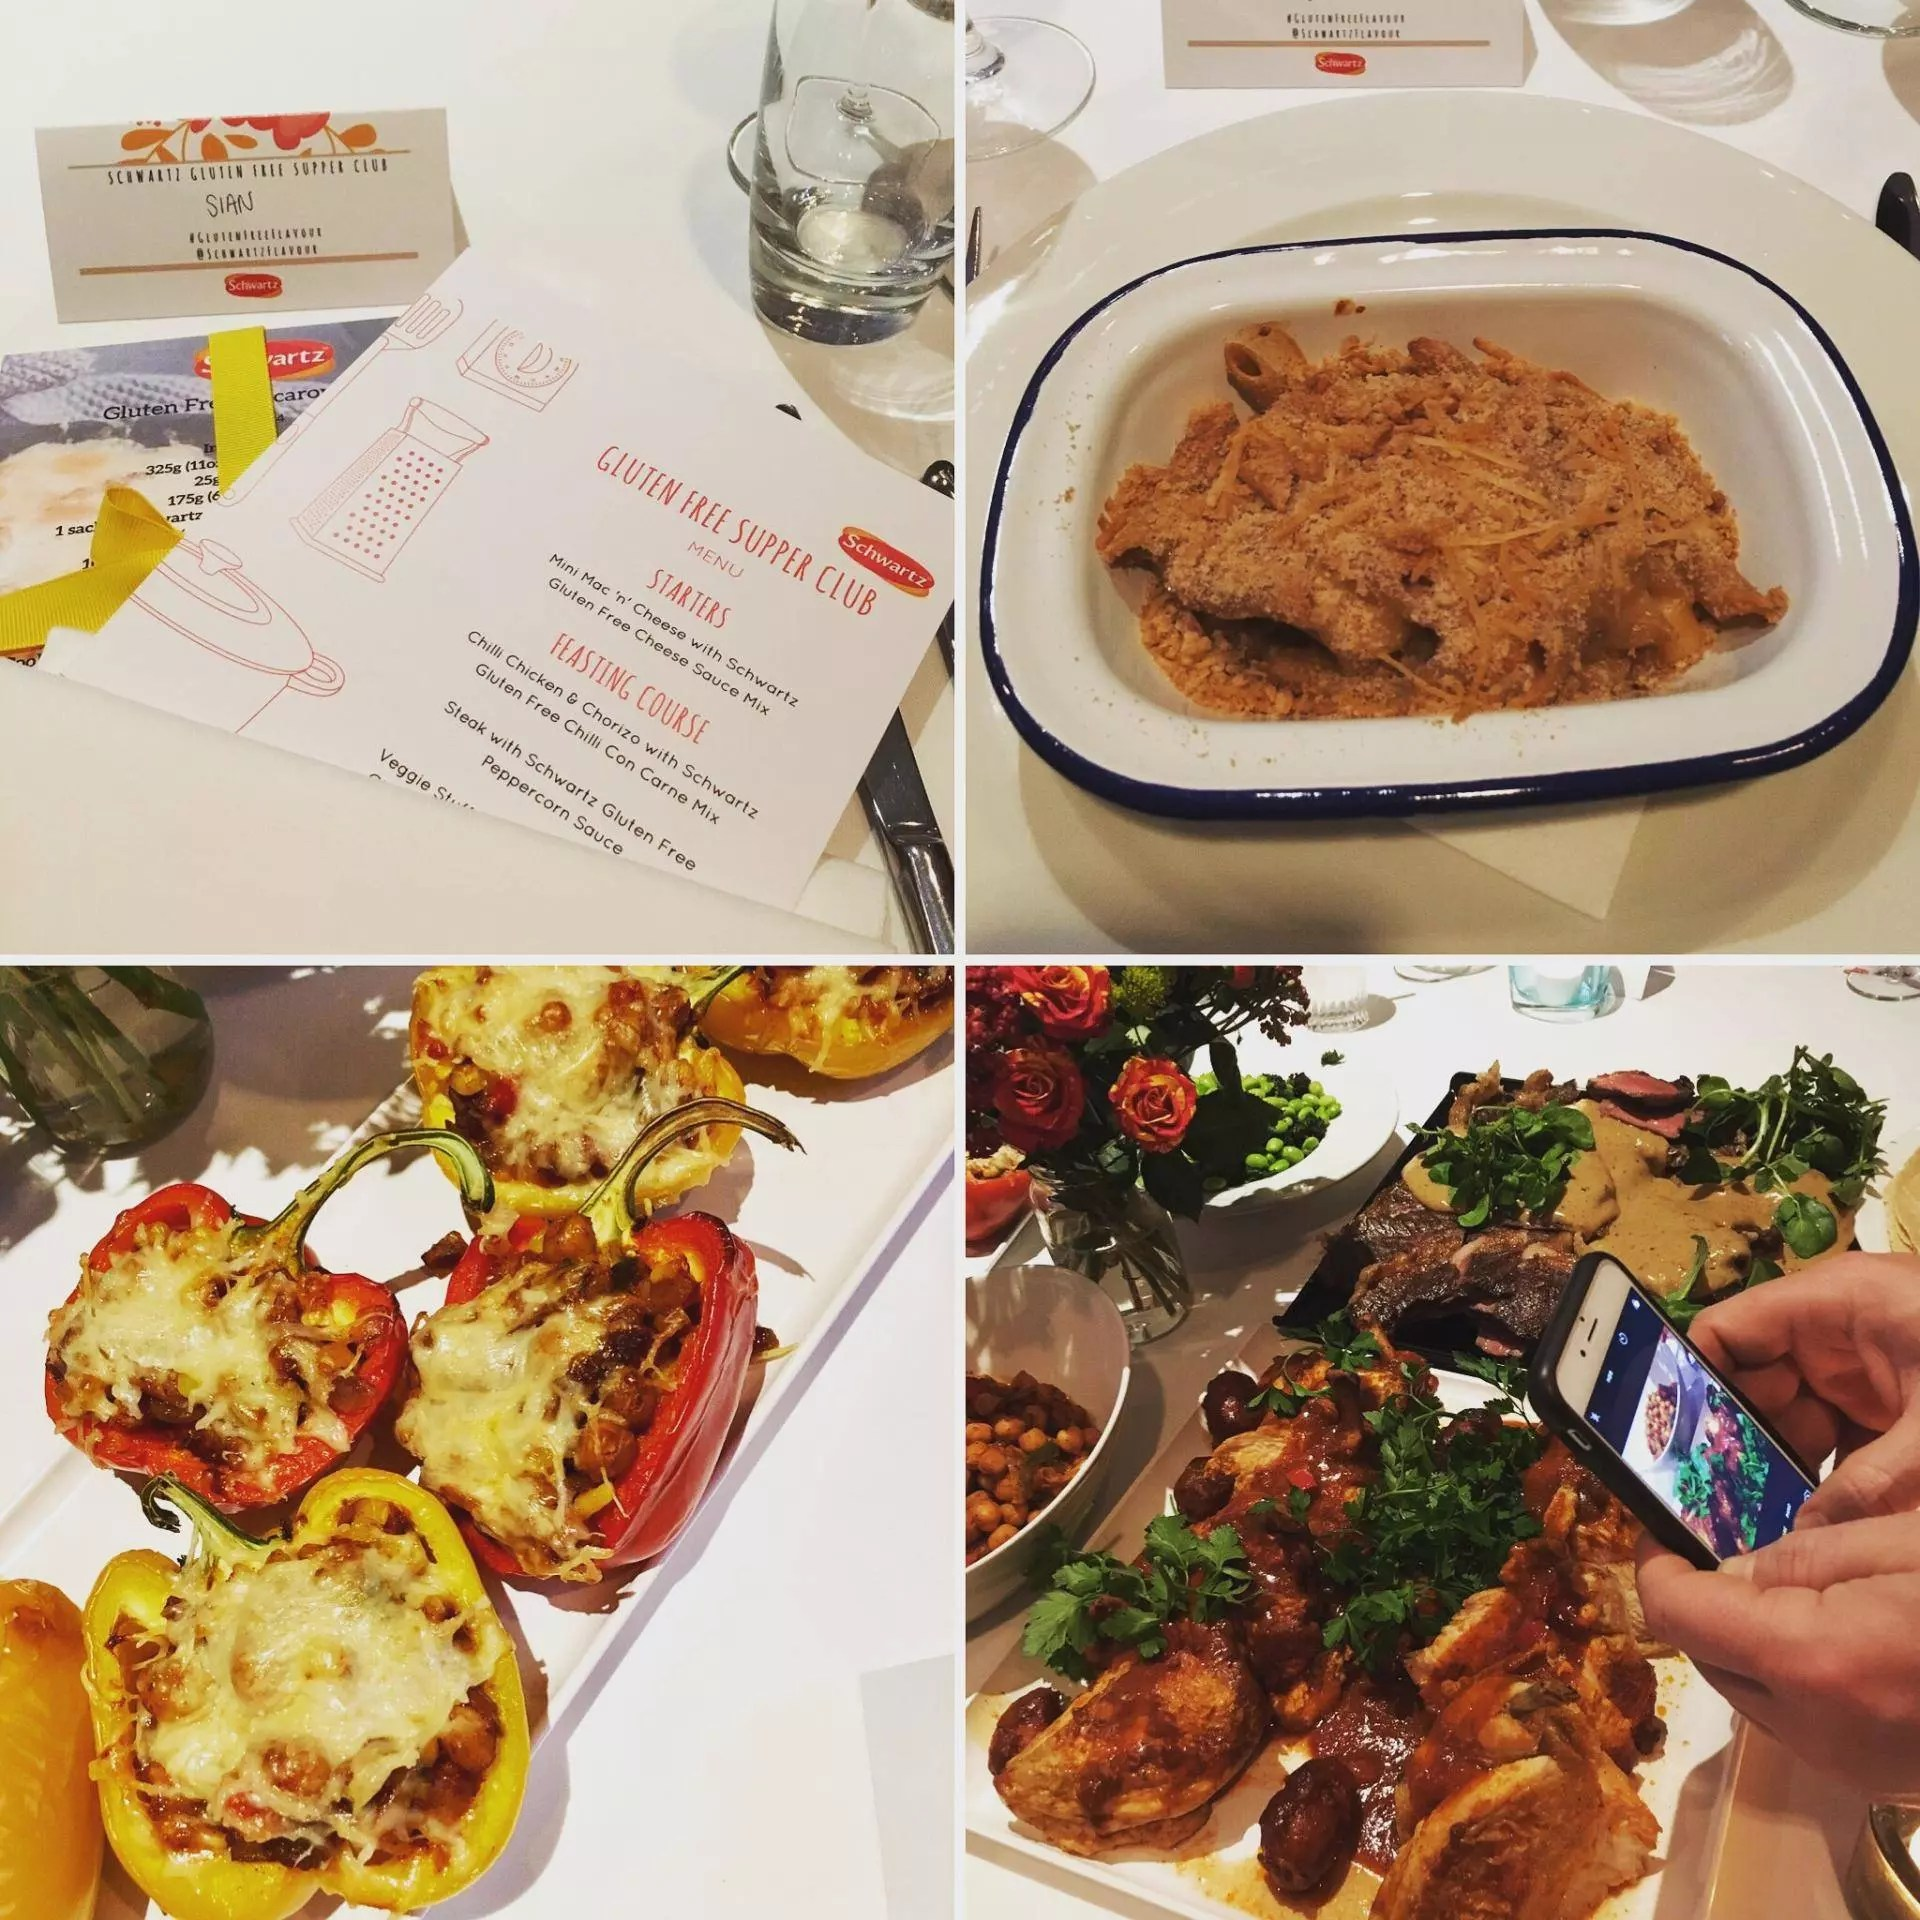 adventures of a gluten free globetrekker Went - Ate - Loved: March 2017 Monthly Round Up